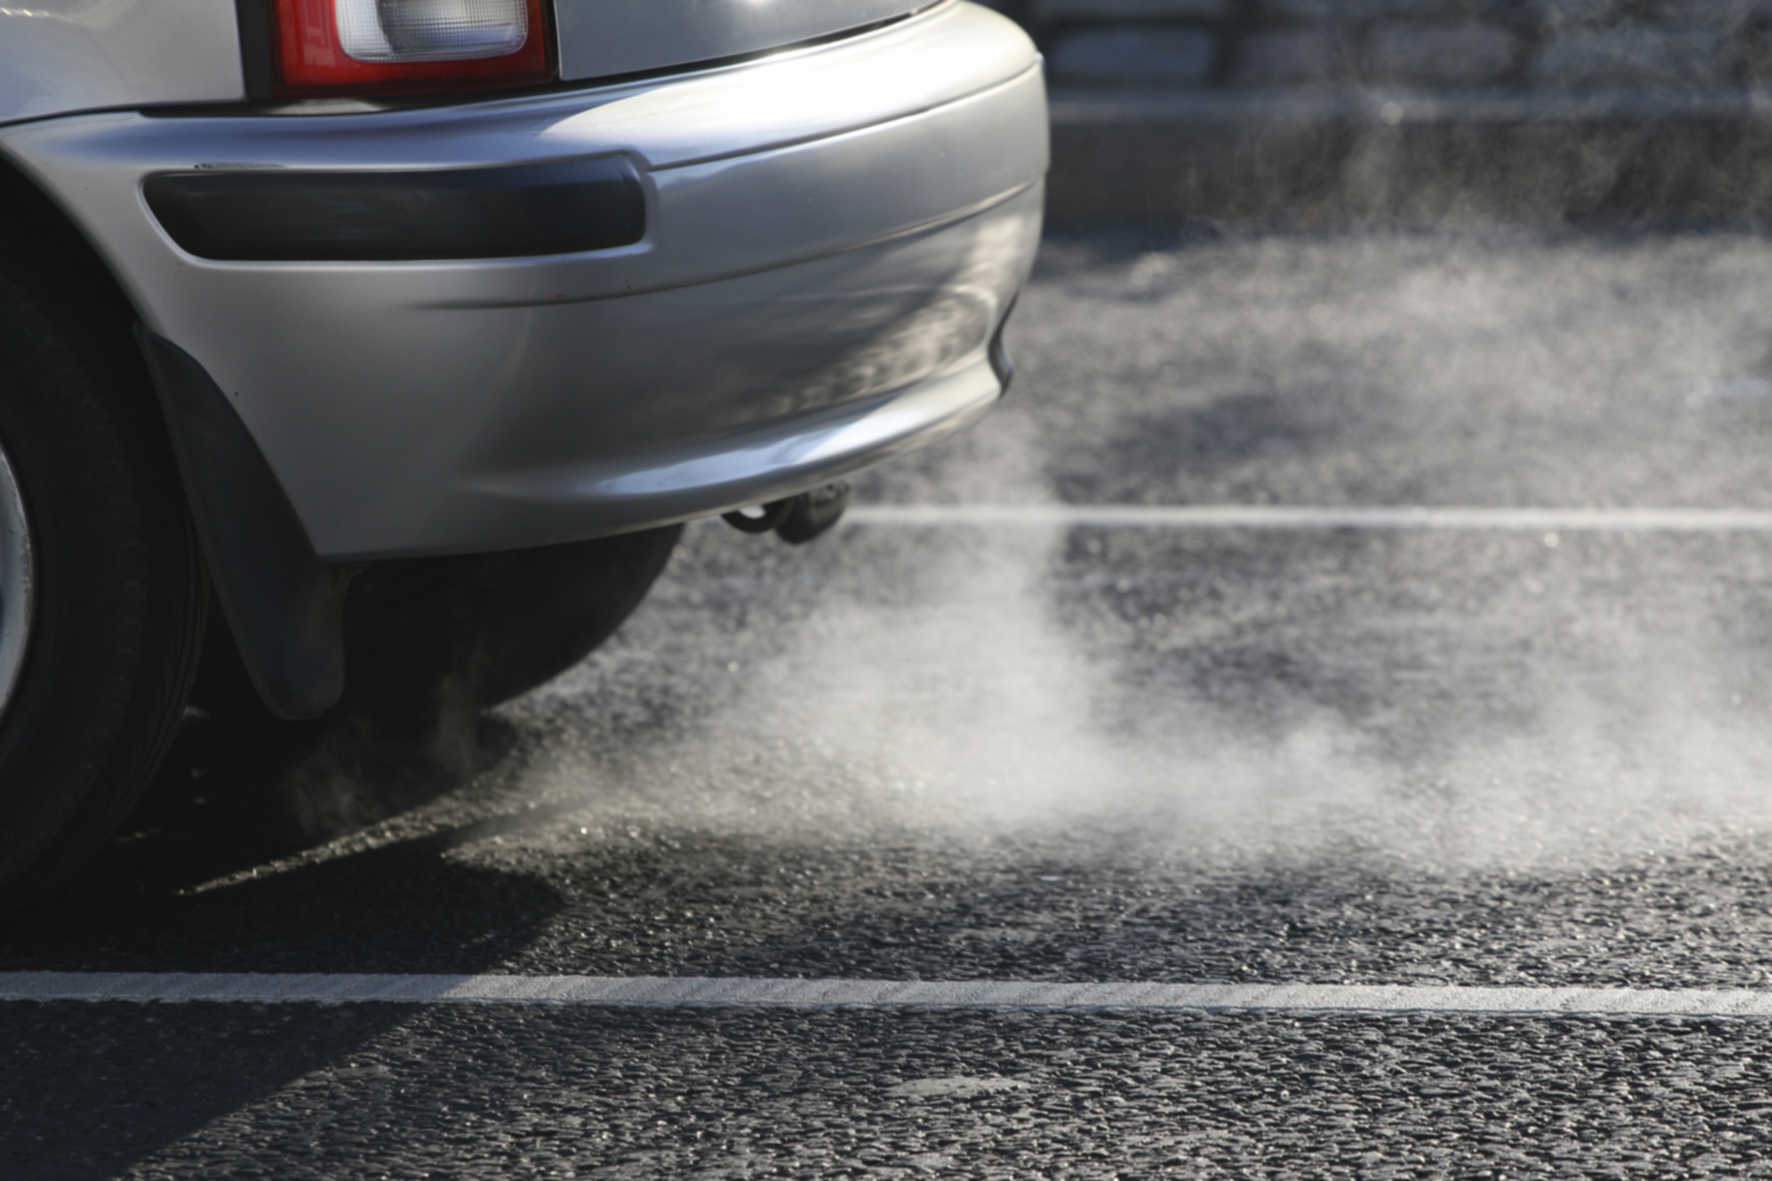 Smoke from your exhaust explained - Car Keys